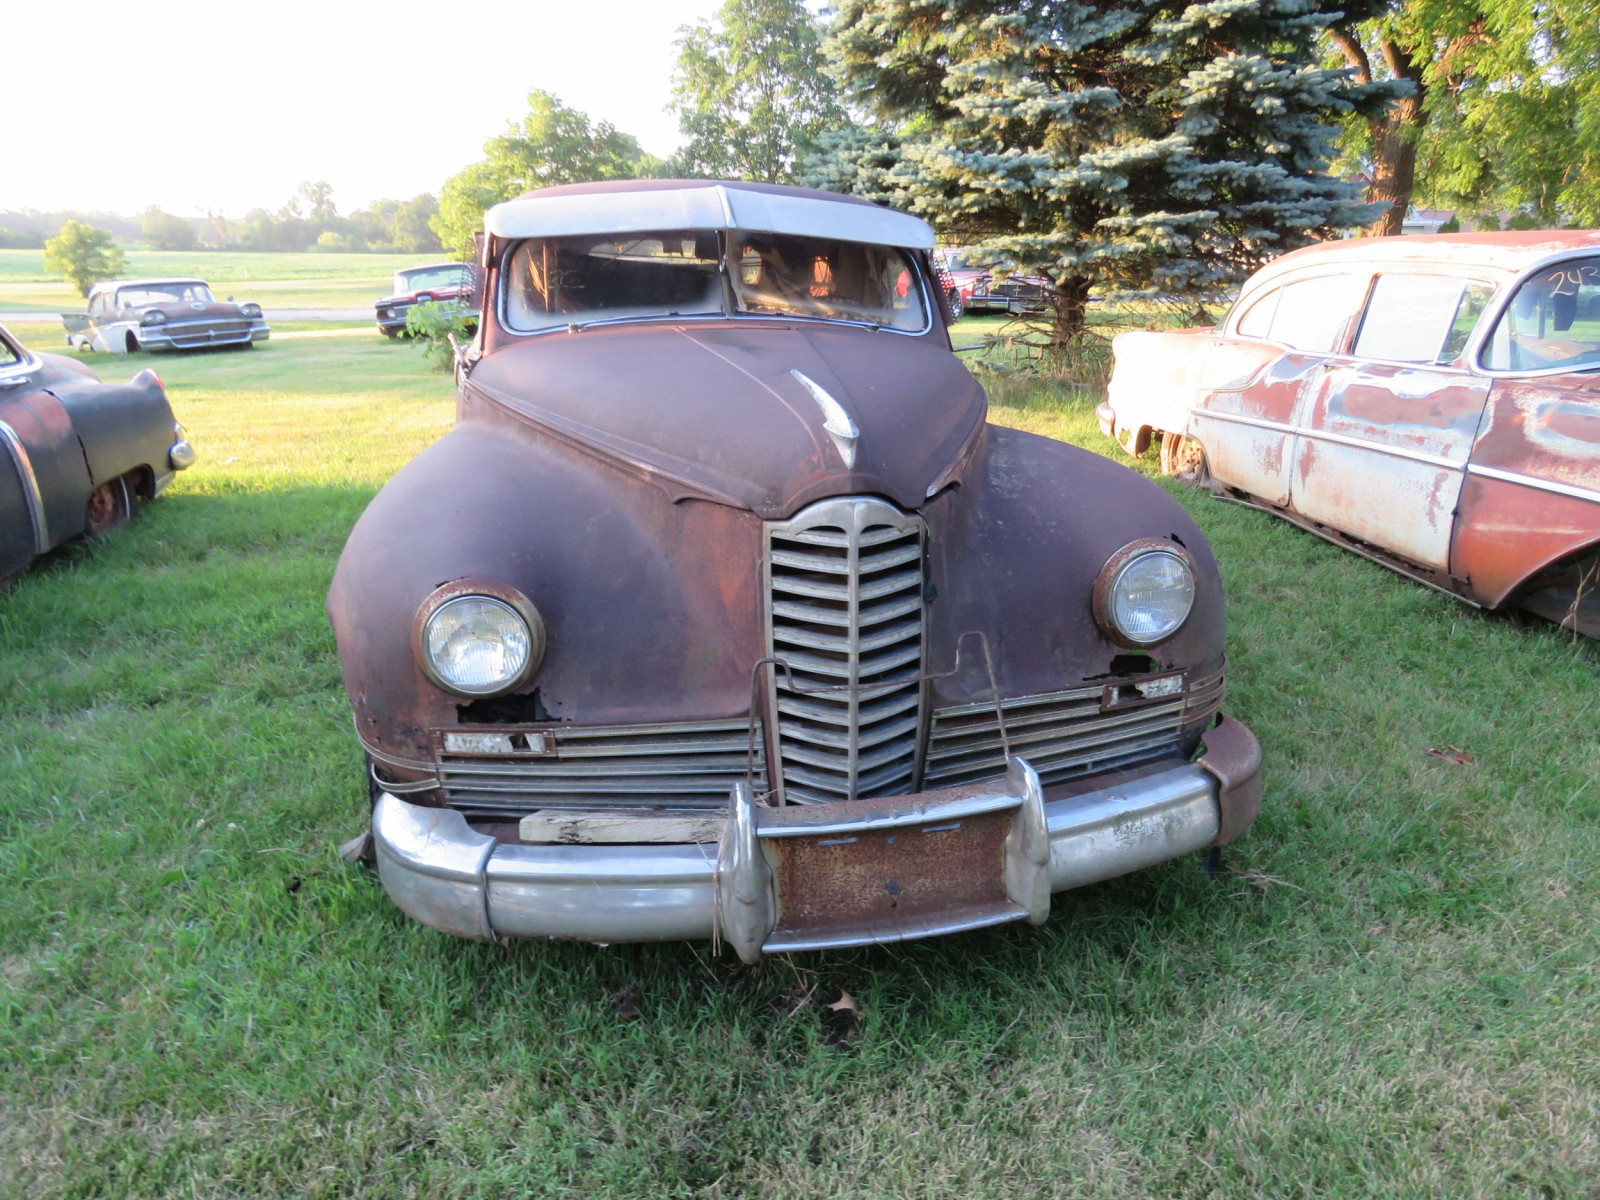 1948 Packard Sedan for parts - Image 2